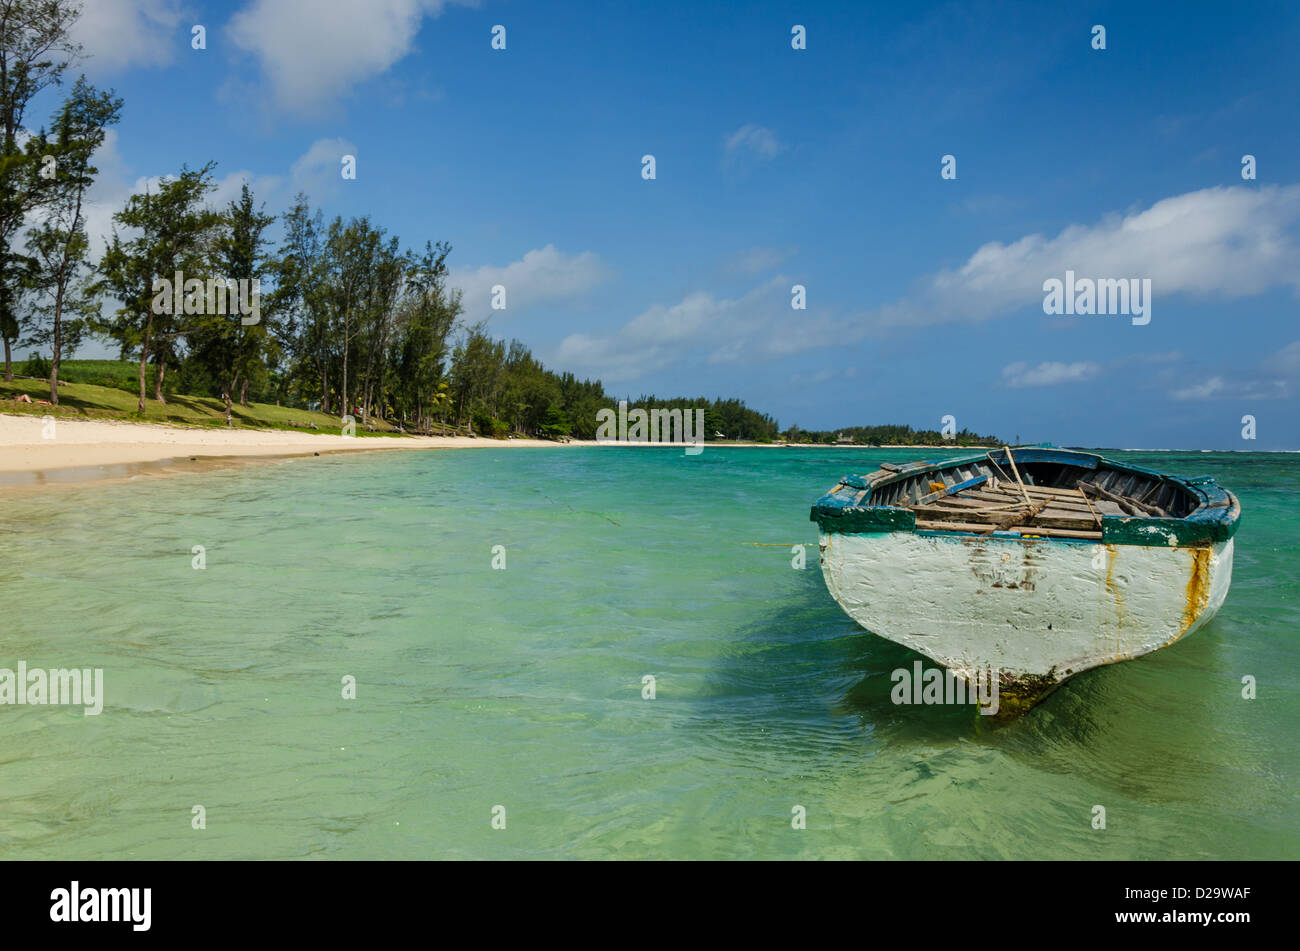 Boat in the lagoon at Bel Ombre 2 - Stock Image